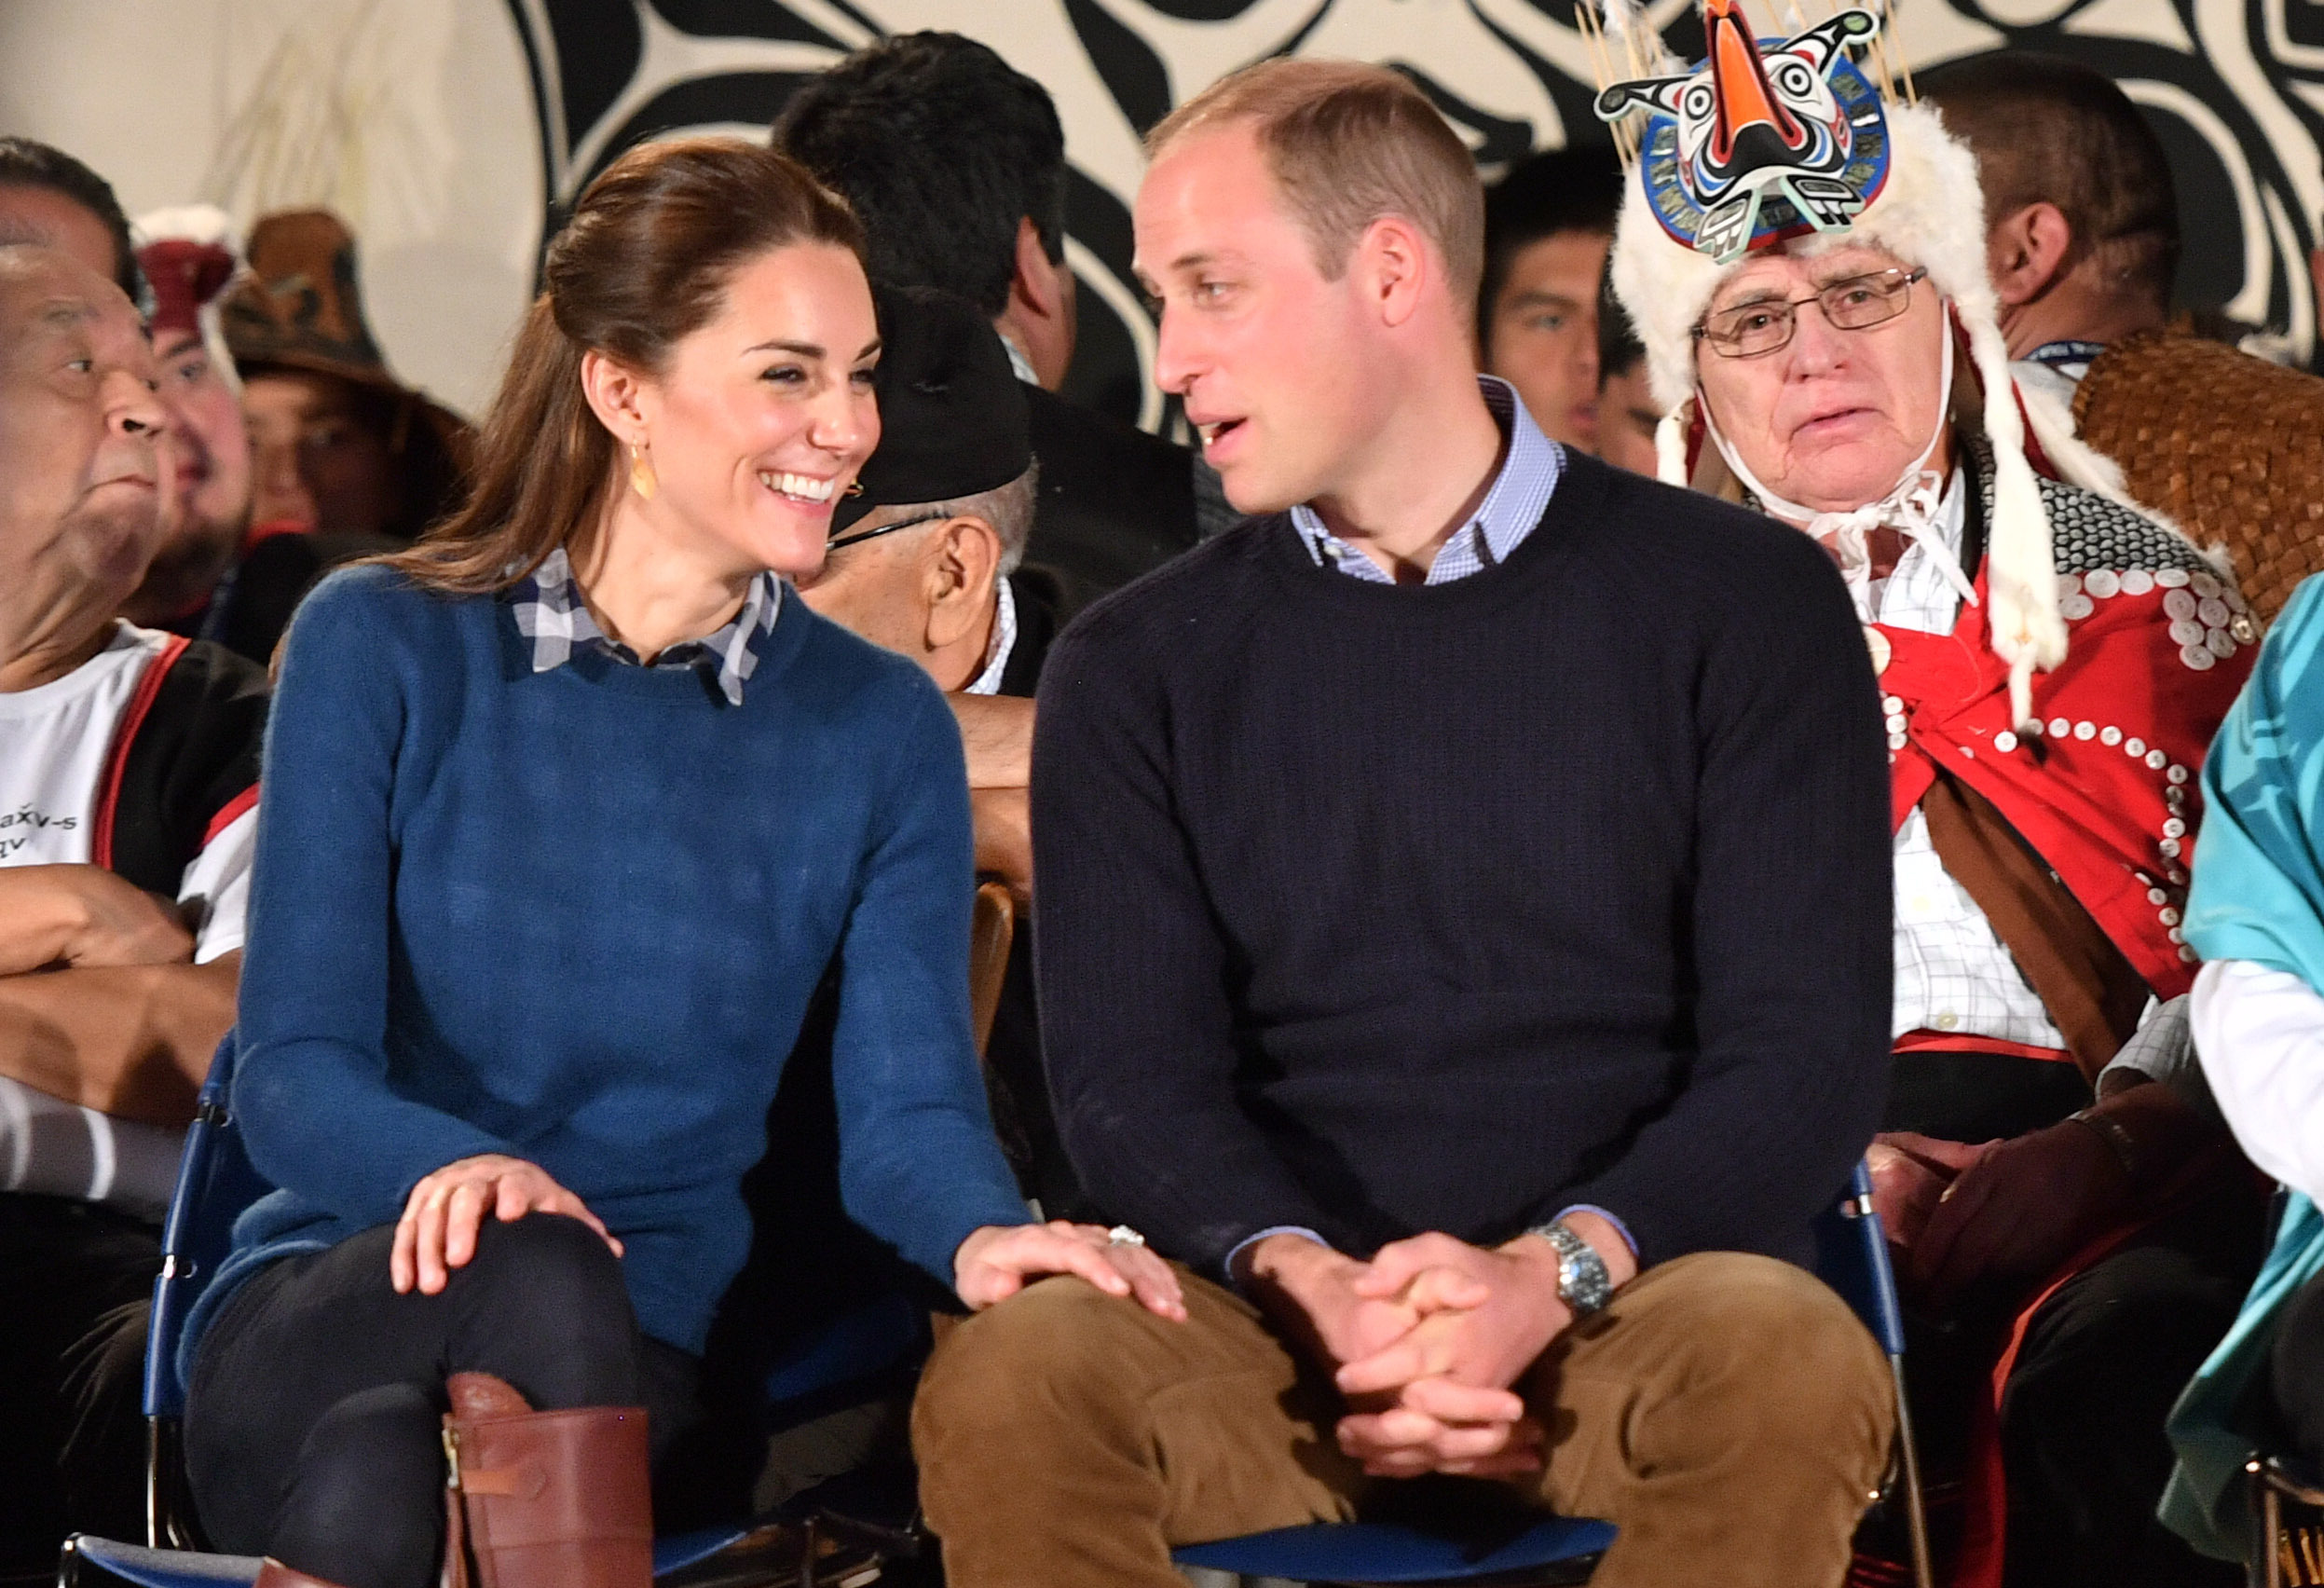 Will and Kate Royal Tour of Canada Day Three